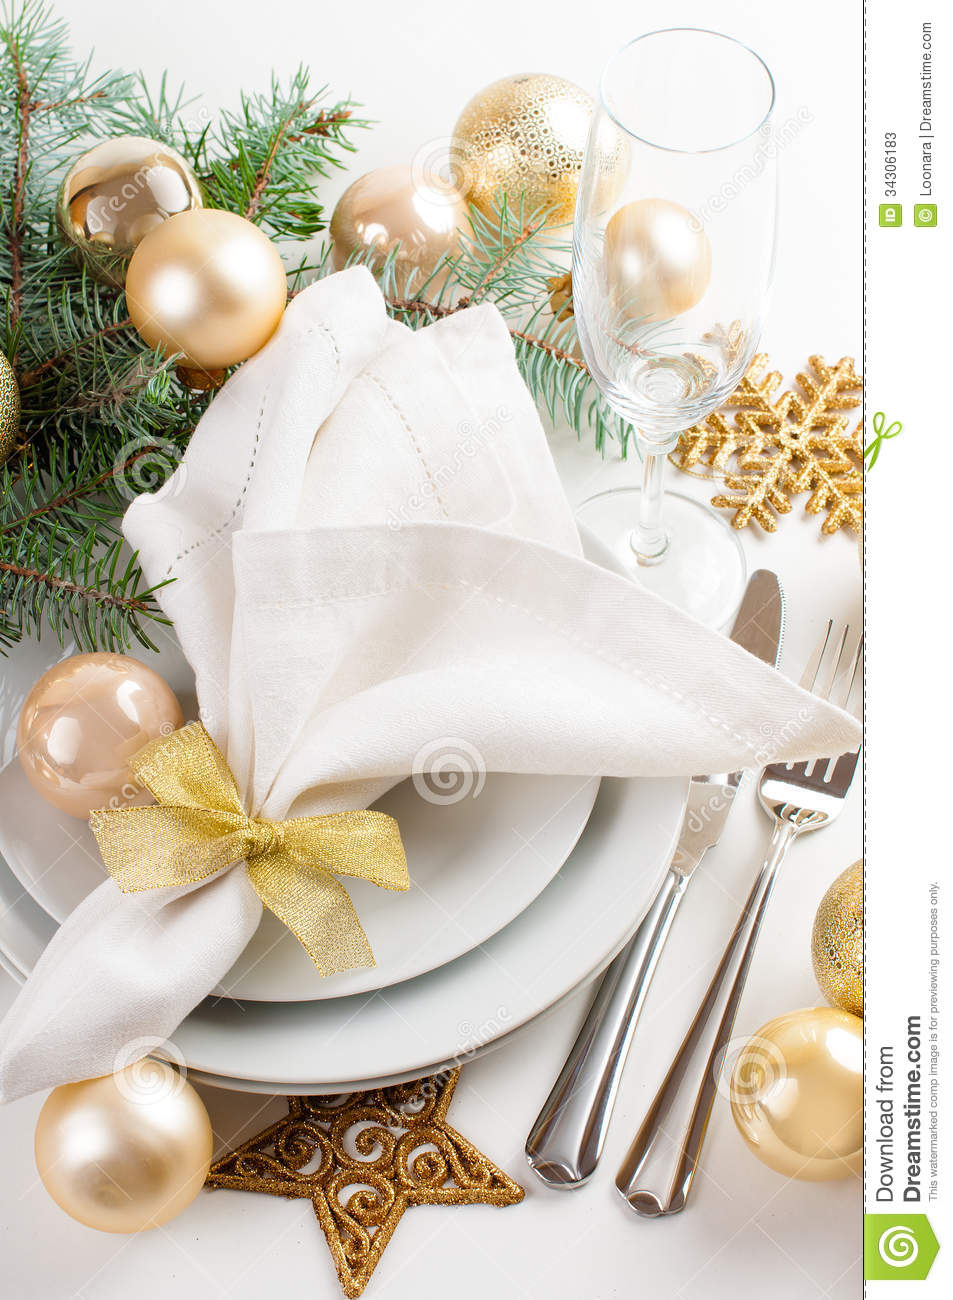 Christmas Table Setting In Gold Tones Stock Photos Image